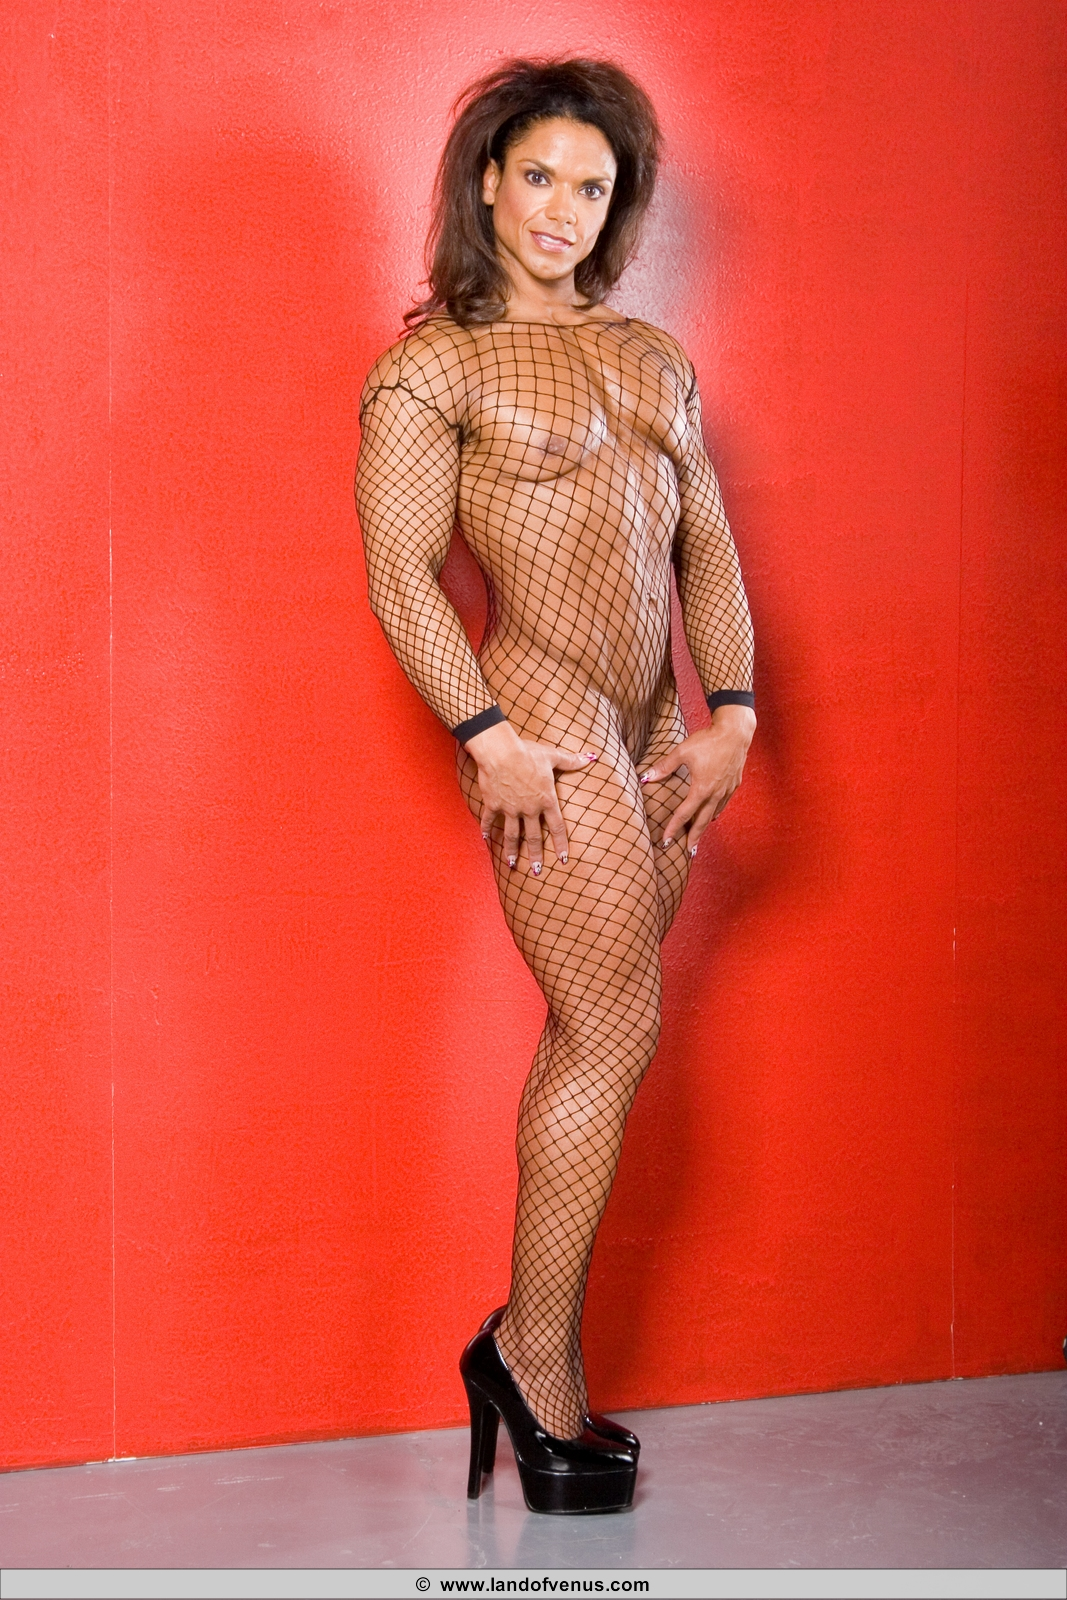 Female bodybuilder women nude